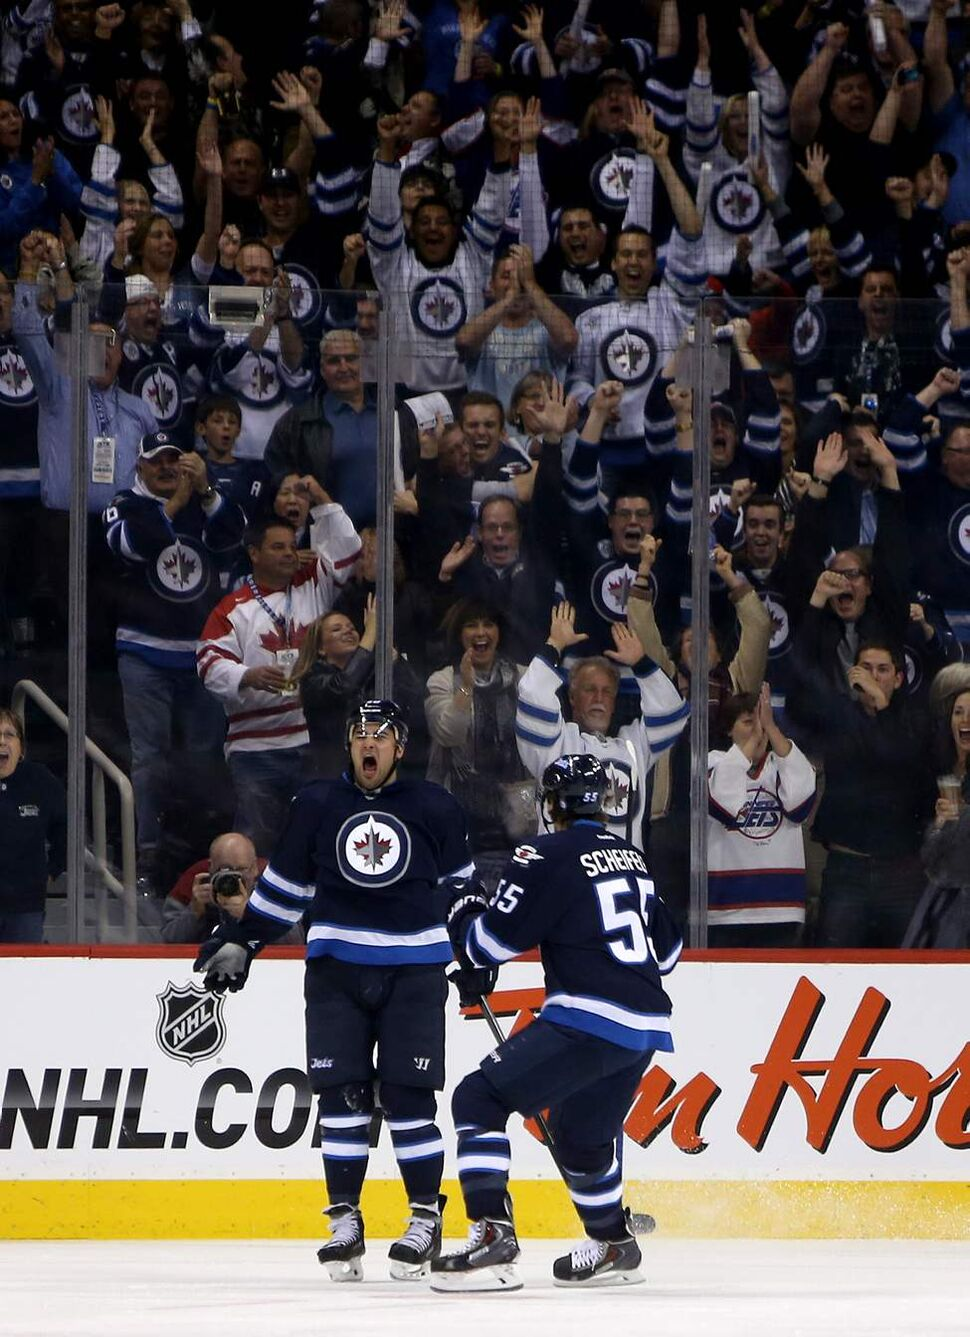 Winnipeg Jets' Devin Setoguchi (40) and Mark Scheifele (55) celebrate a third period goal against the Los Angeles Kings' during the third period. (TREVOR HAGAN / WINNIPEG FREE PRESS)